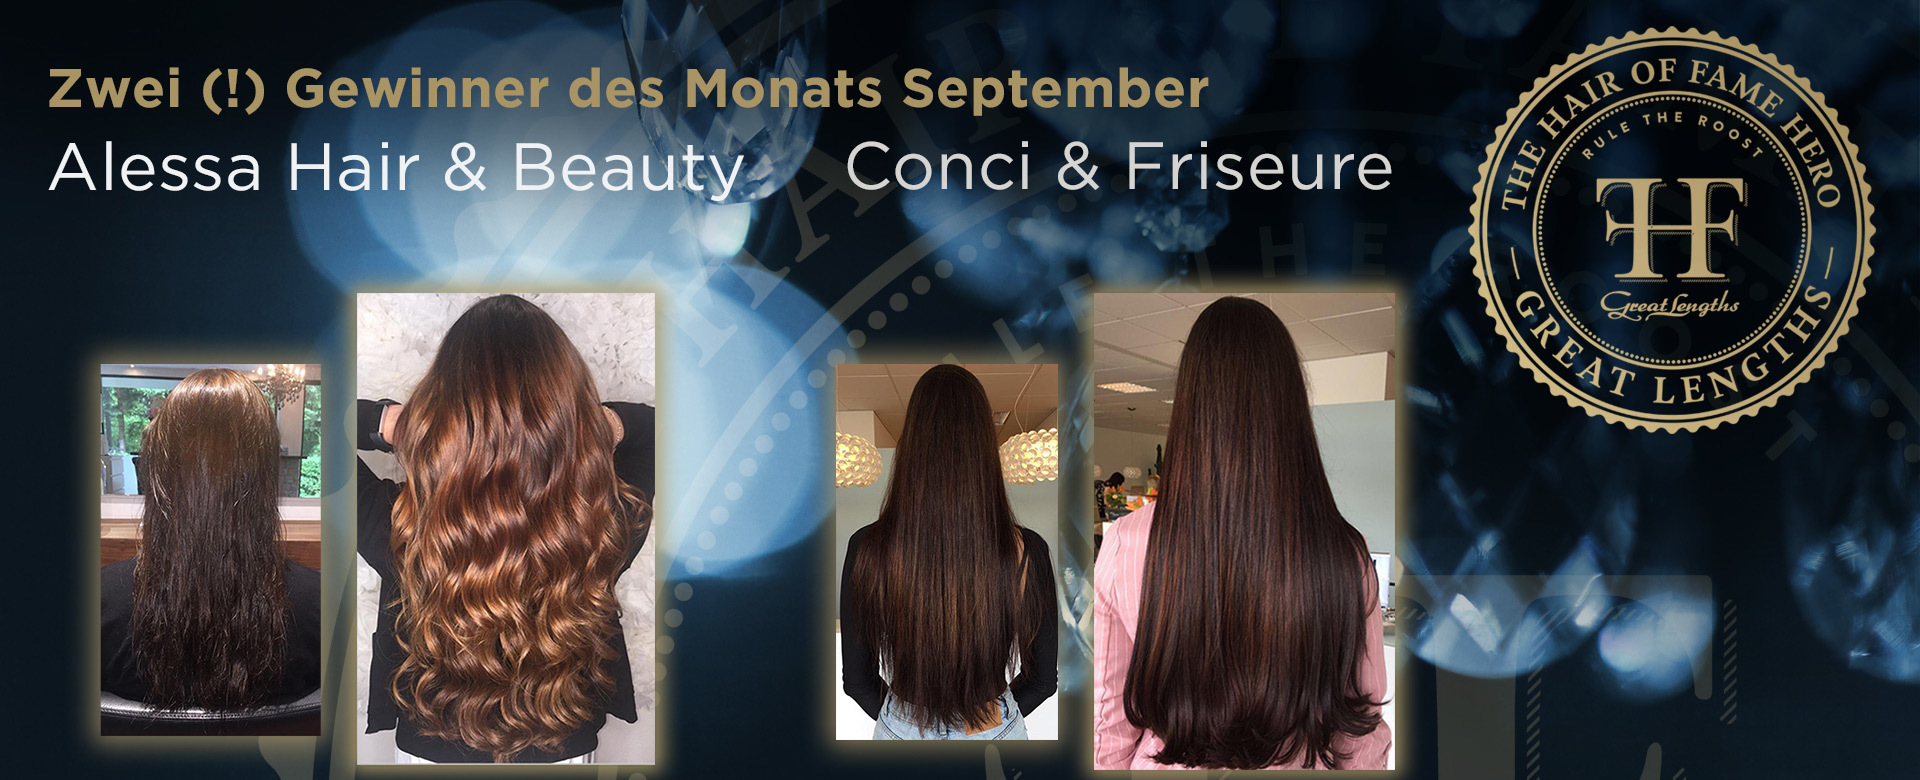 Hair-of-Fame Hero Monat September 2018 (© Great Lengths)